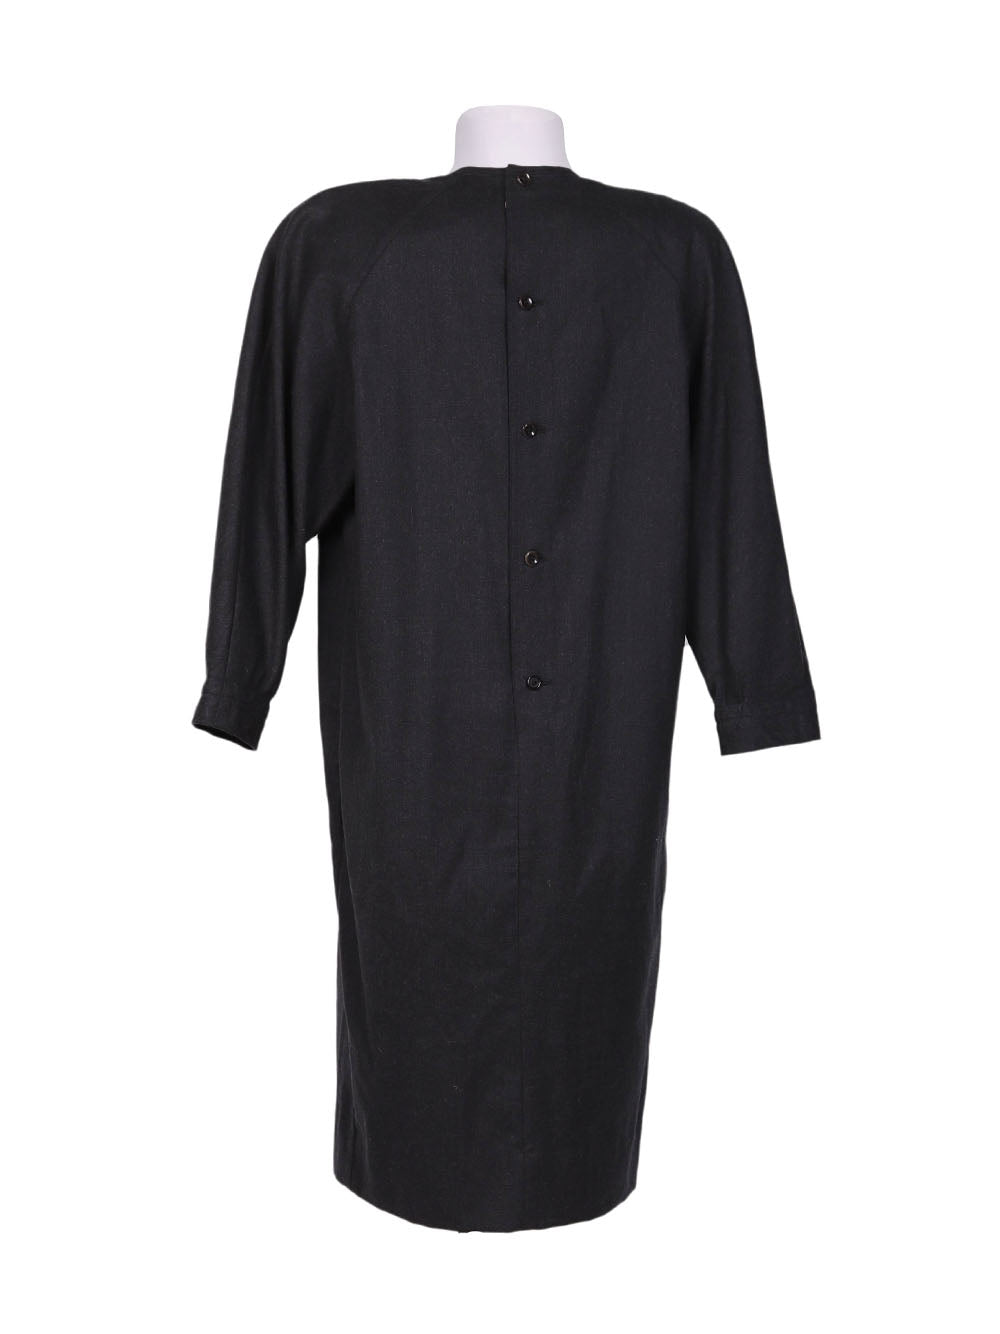 Back photo of Preloved Max Mara Black Woman's dress - size 10/M